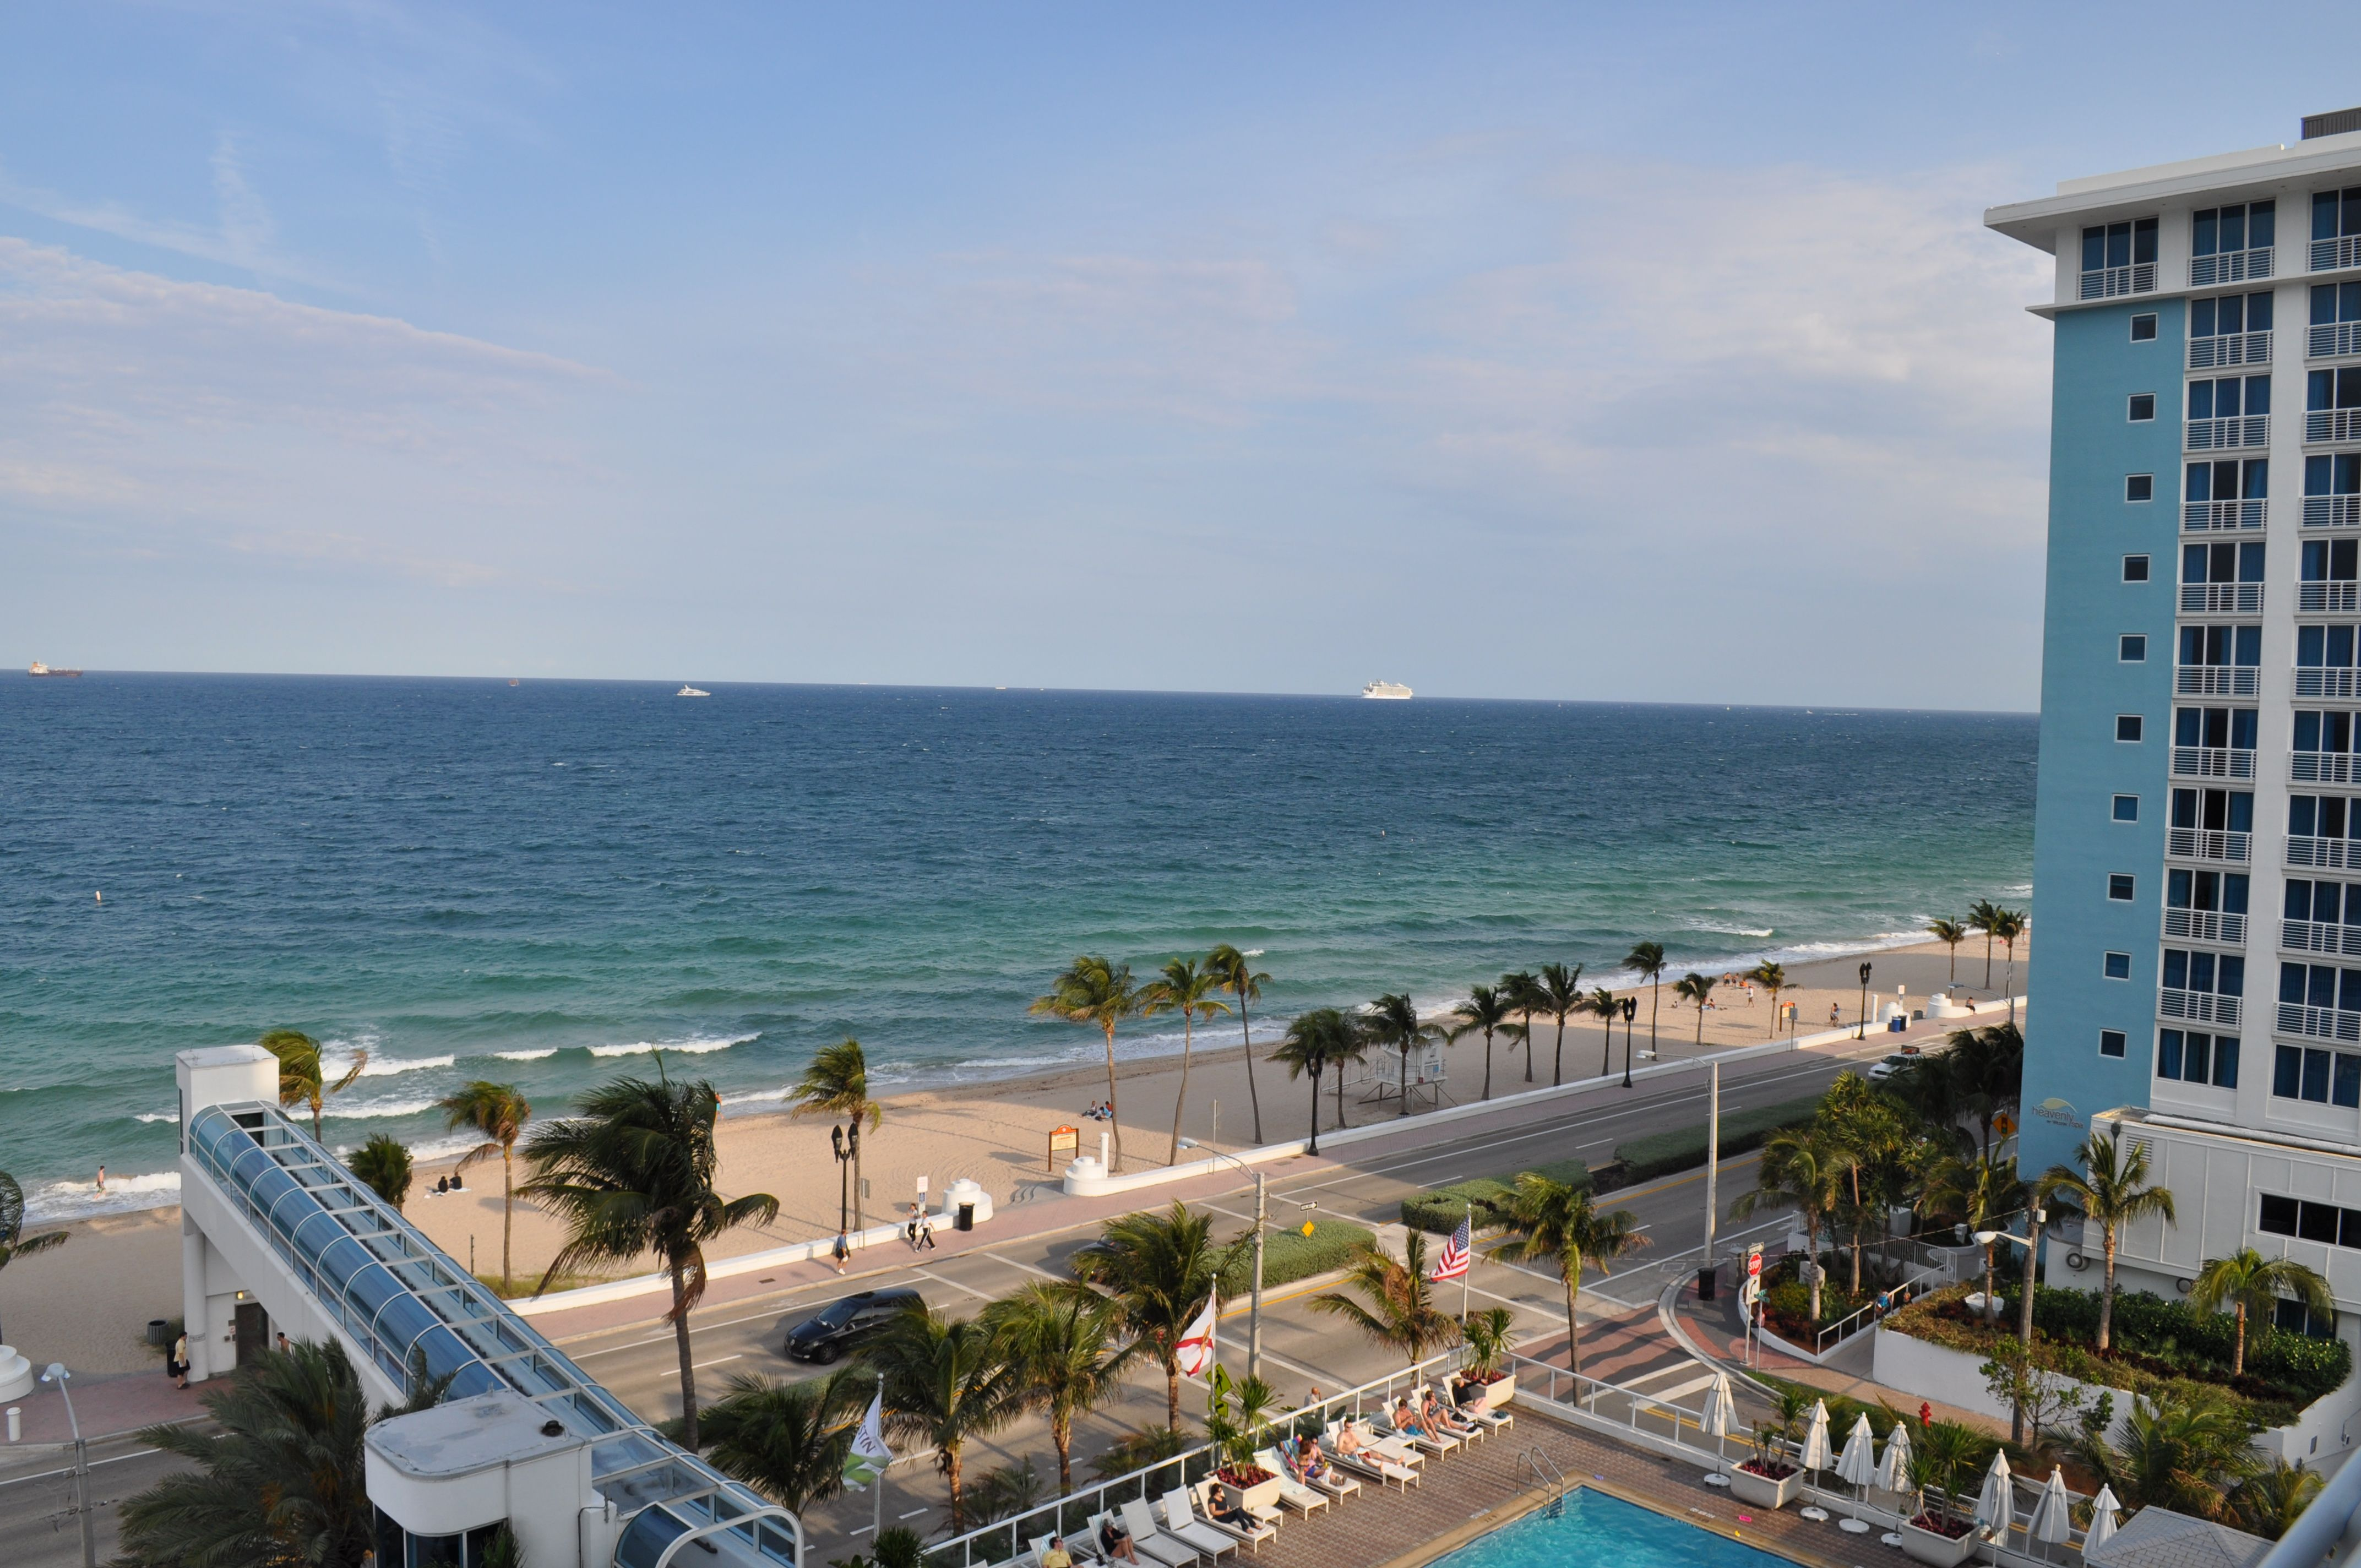 View of ships leaving Port Everglades from the 9th floor of the Westin Ft Lauderdale Beach.